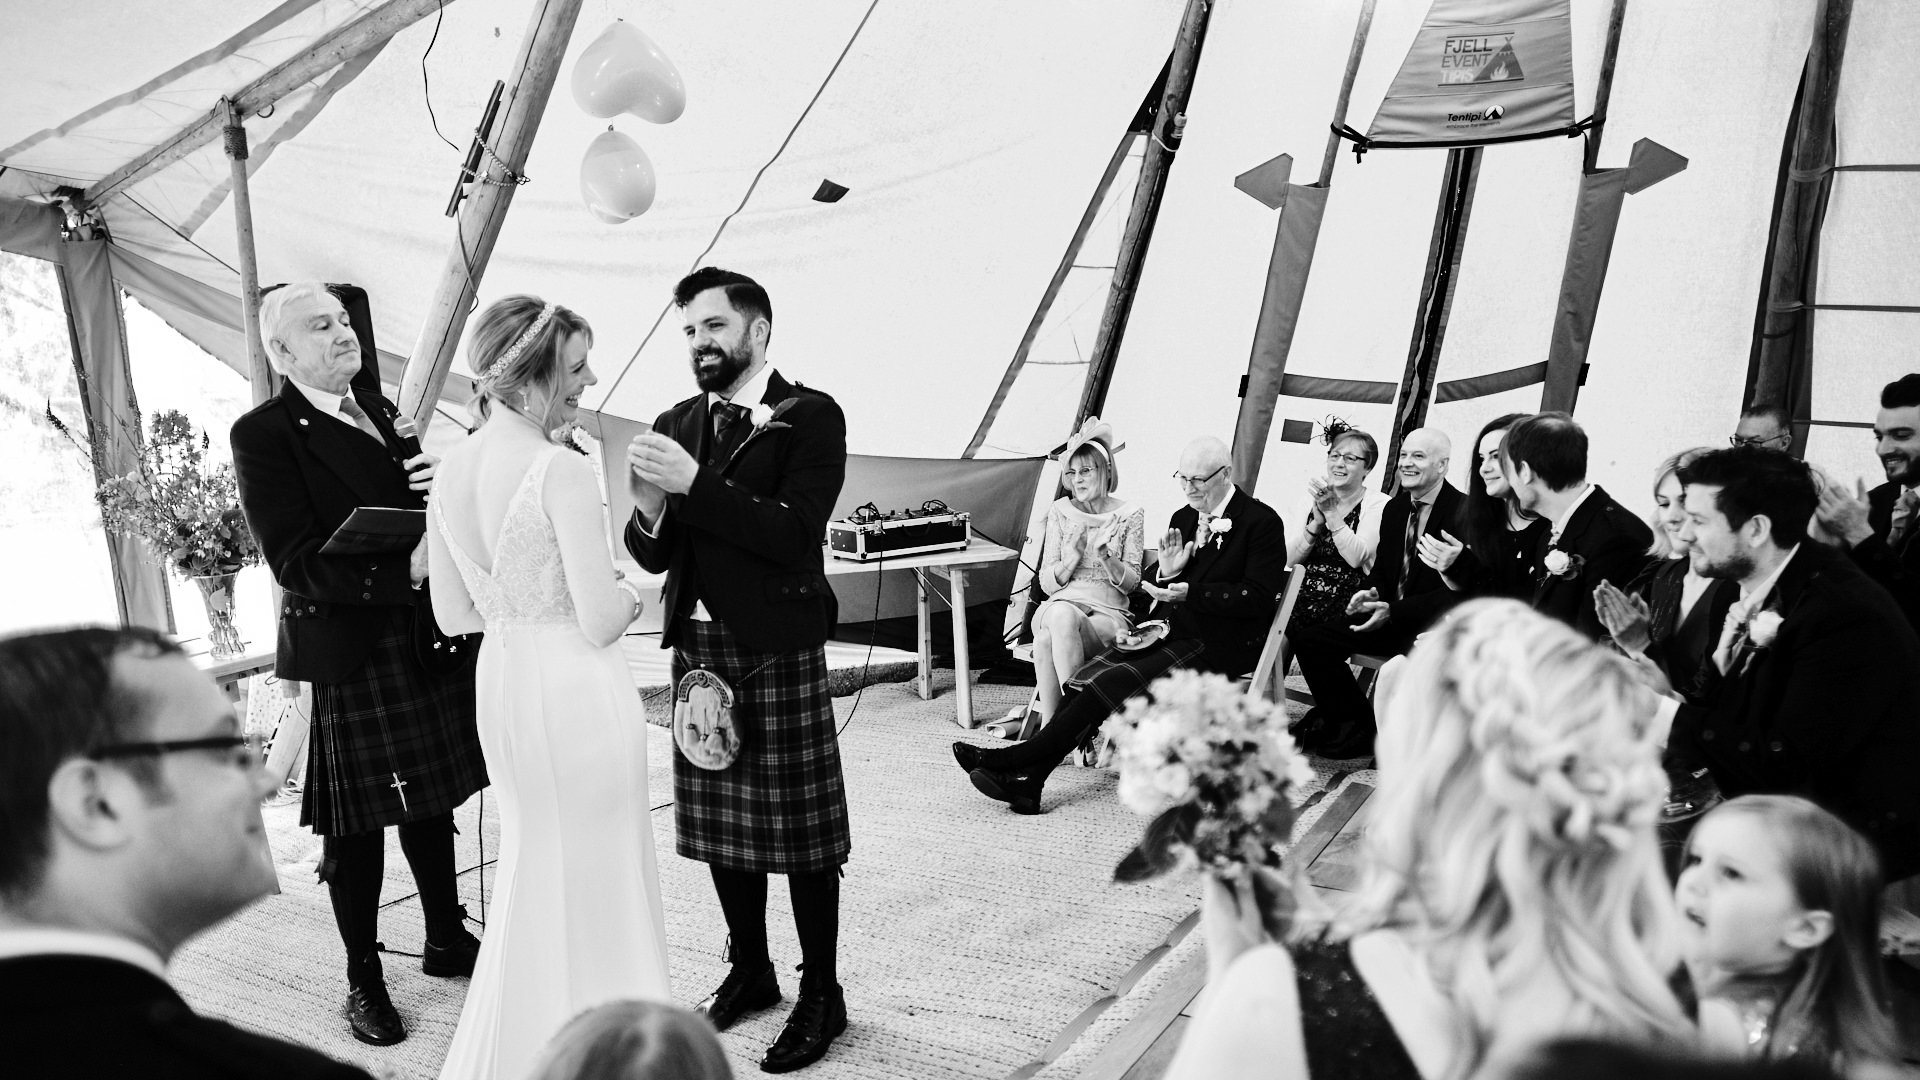 black and white photograph of the bride and groom during their wedding ceremony